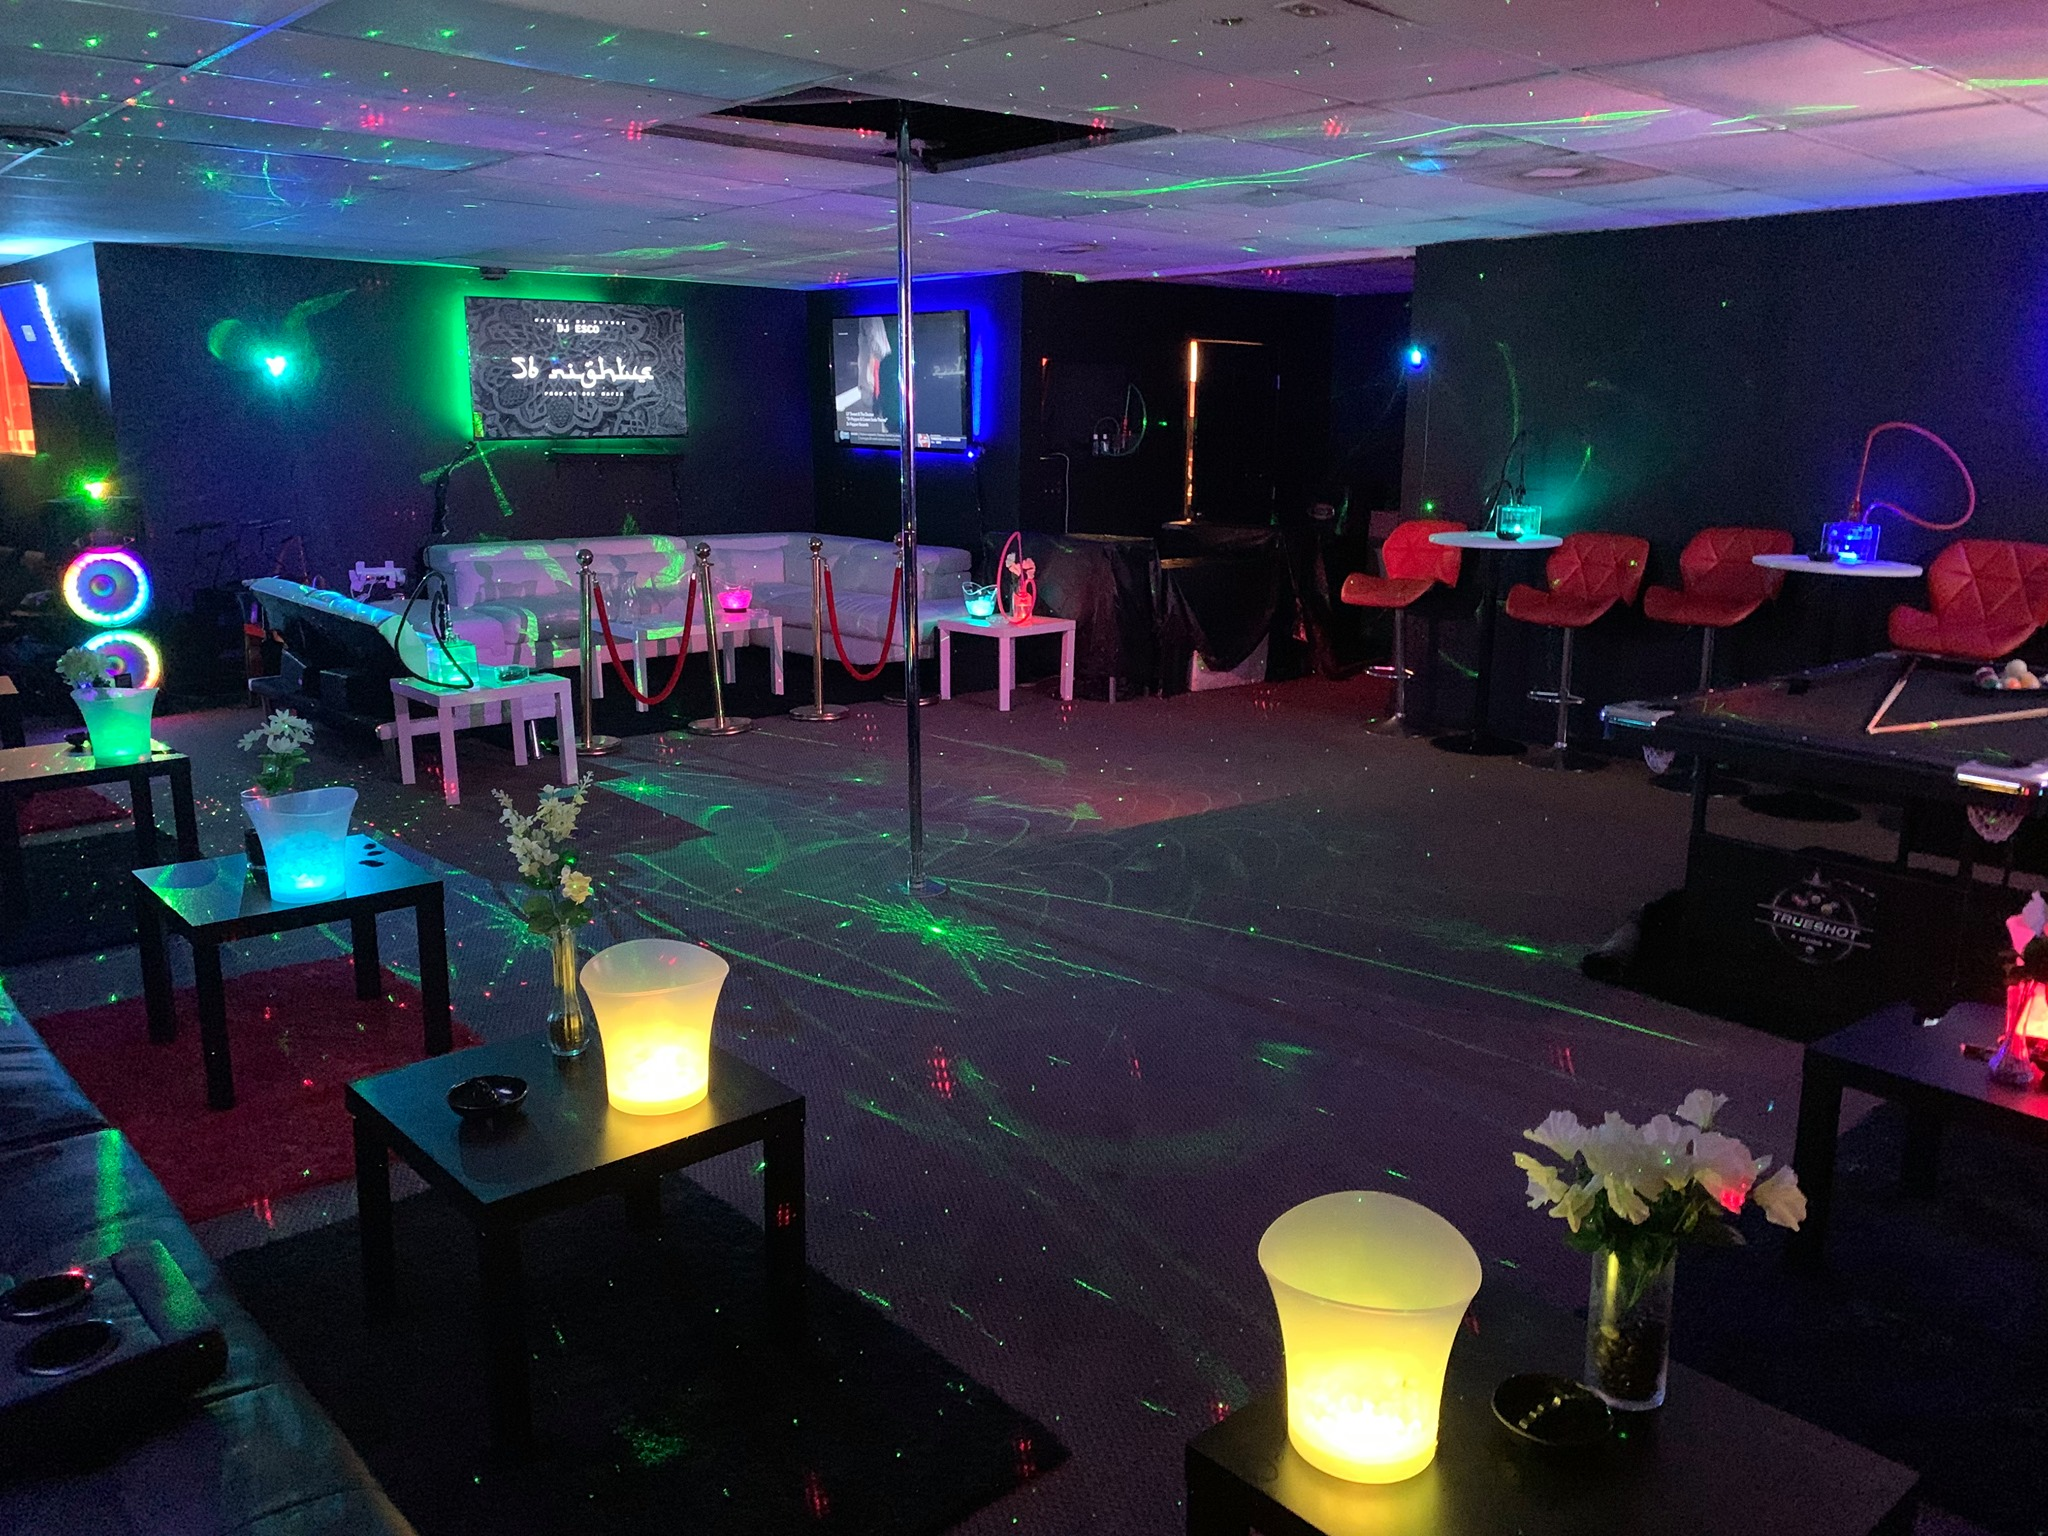 Exstacy Lounge Venue (Overnight stay)